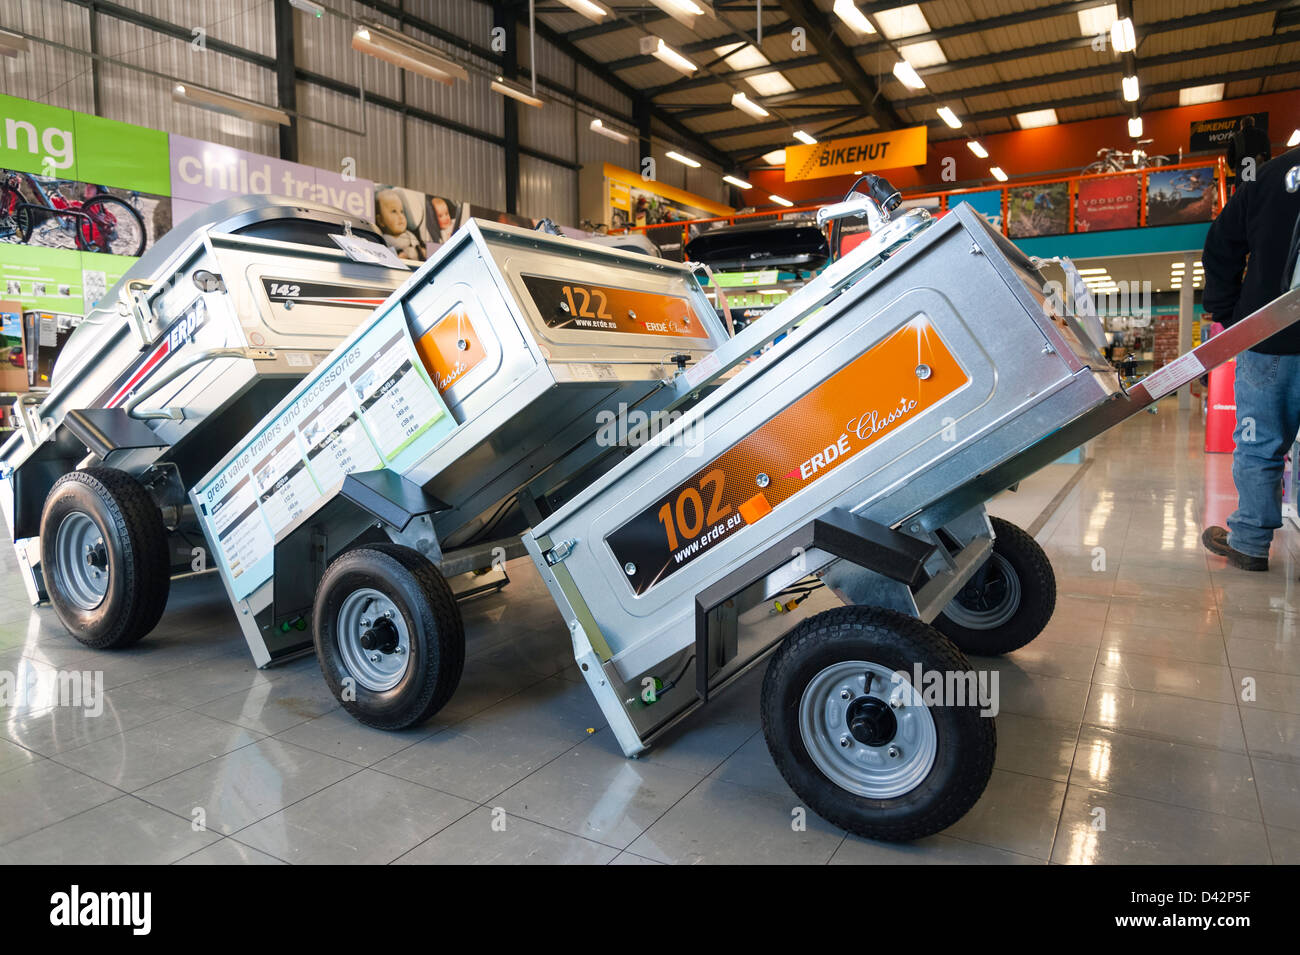 New trailers for sale in a Halfords shop, Hereford, UK. Stock Photo